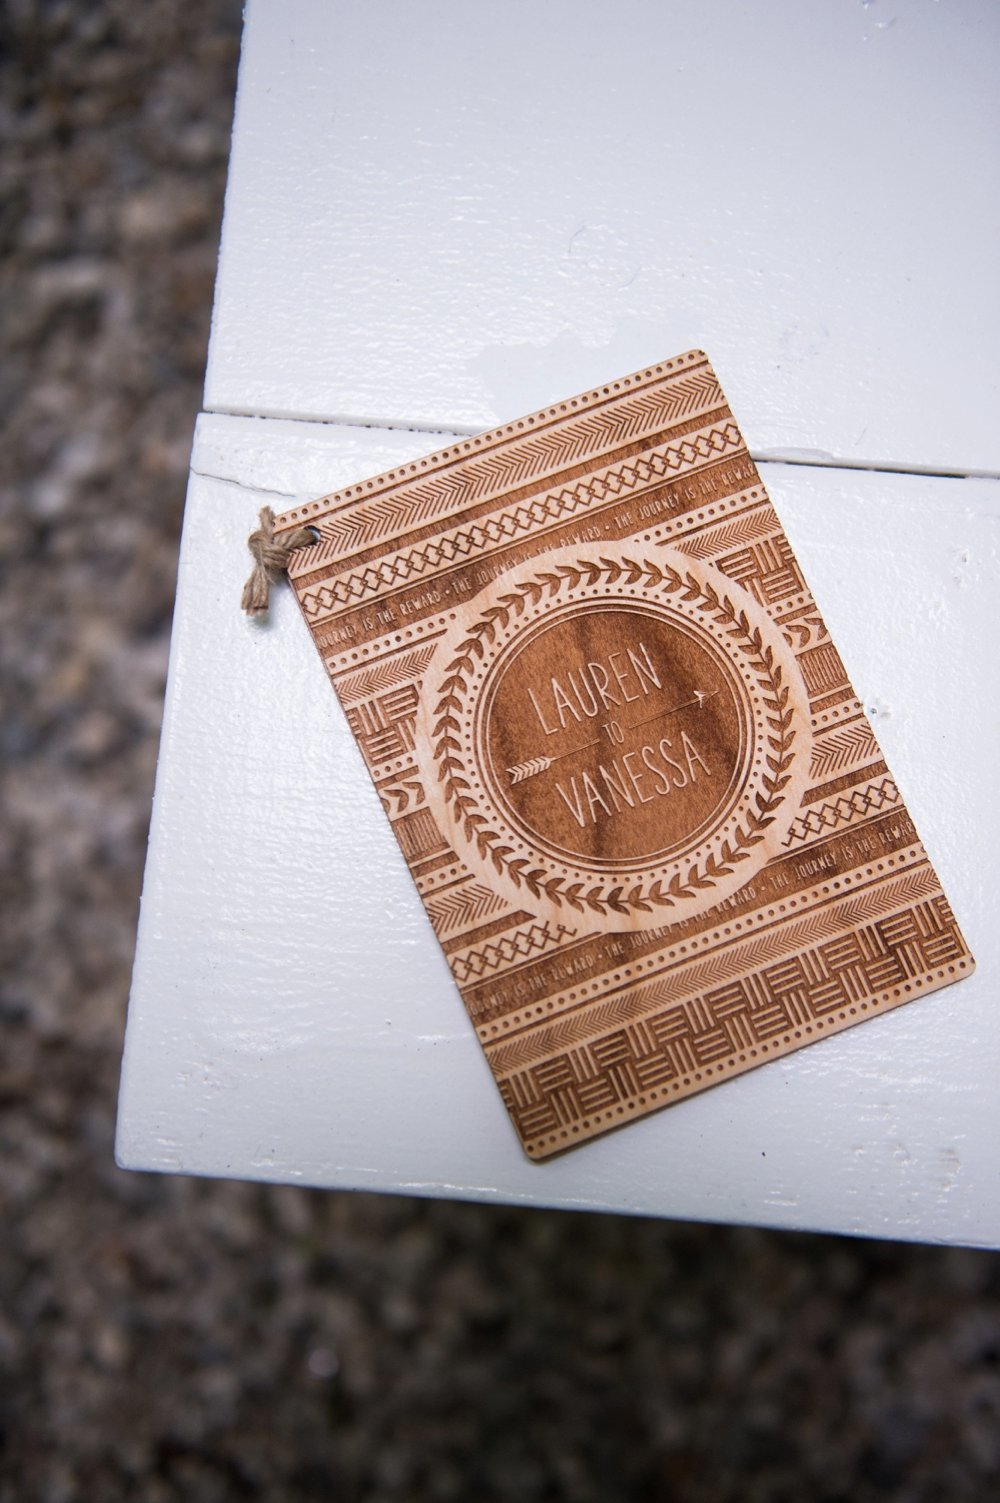 Wooden wedding ceremony program for Rustic same-sex wedding at The Barn at Walnut Hill in Maine